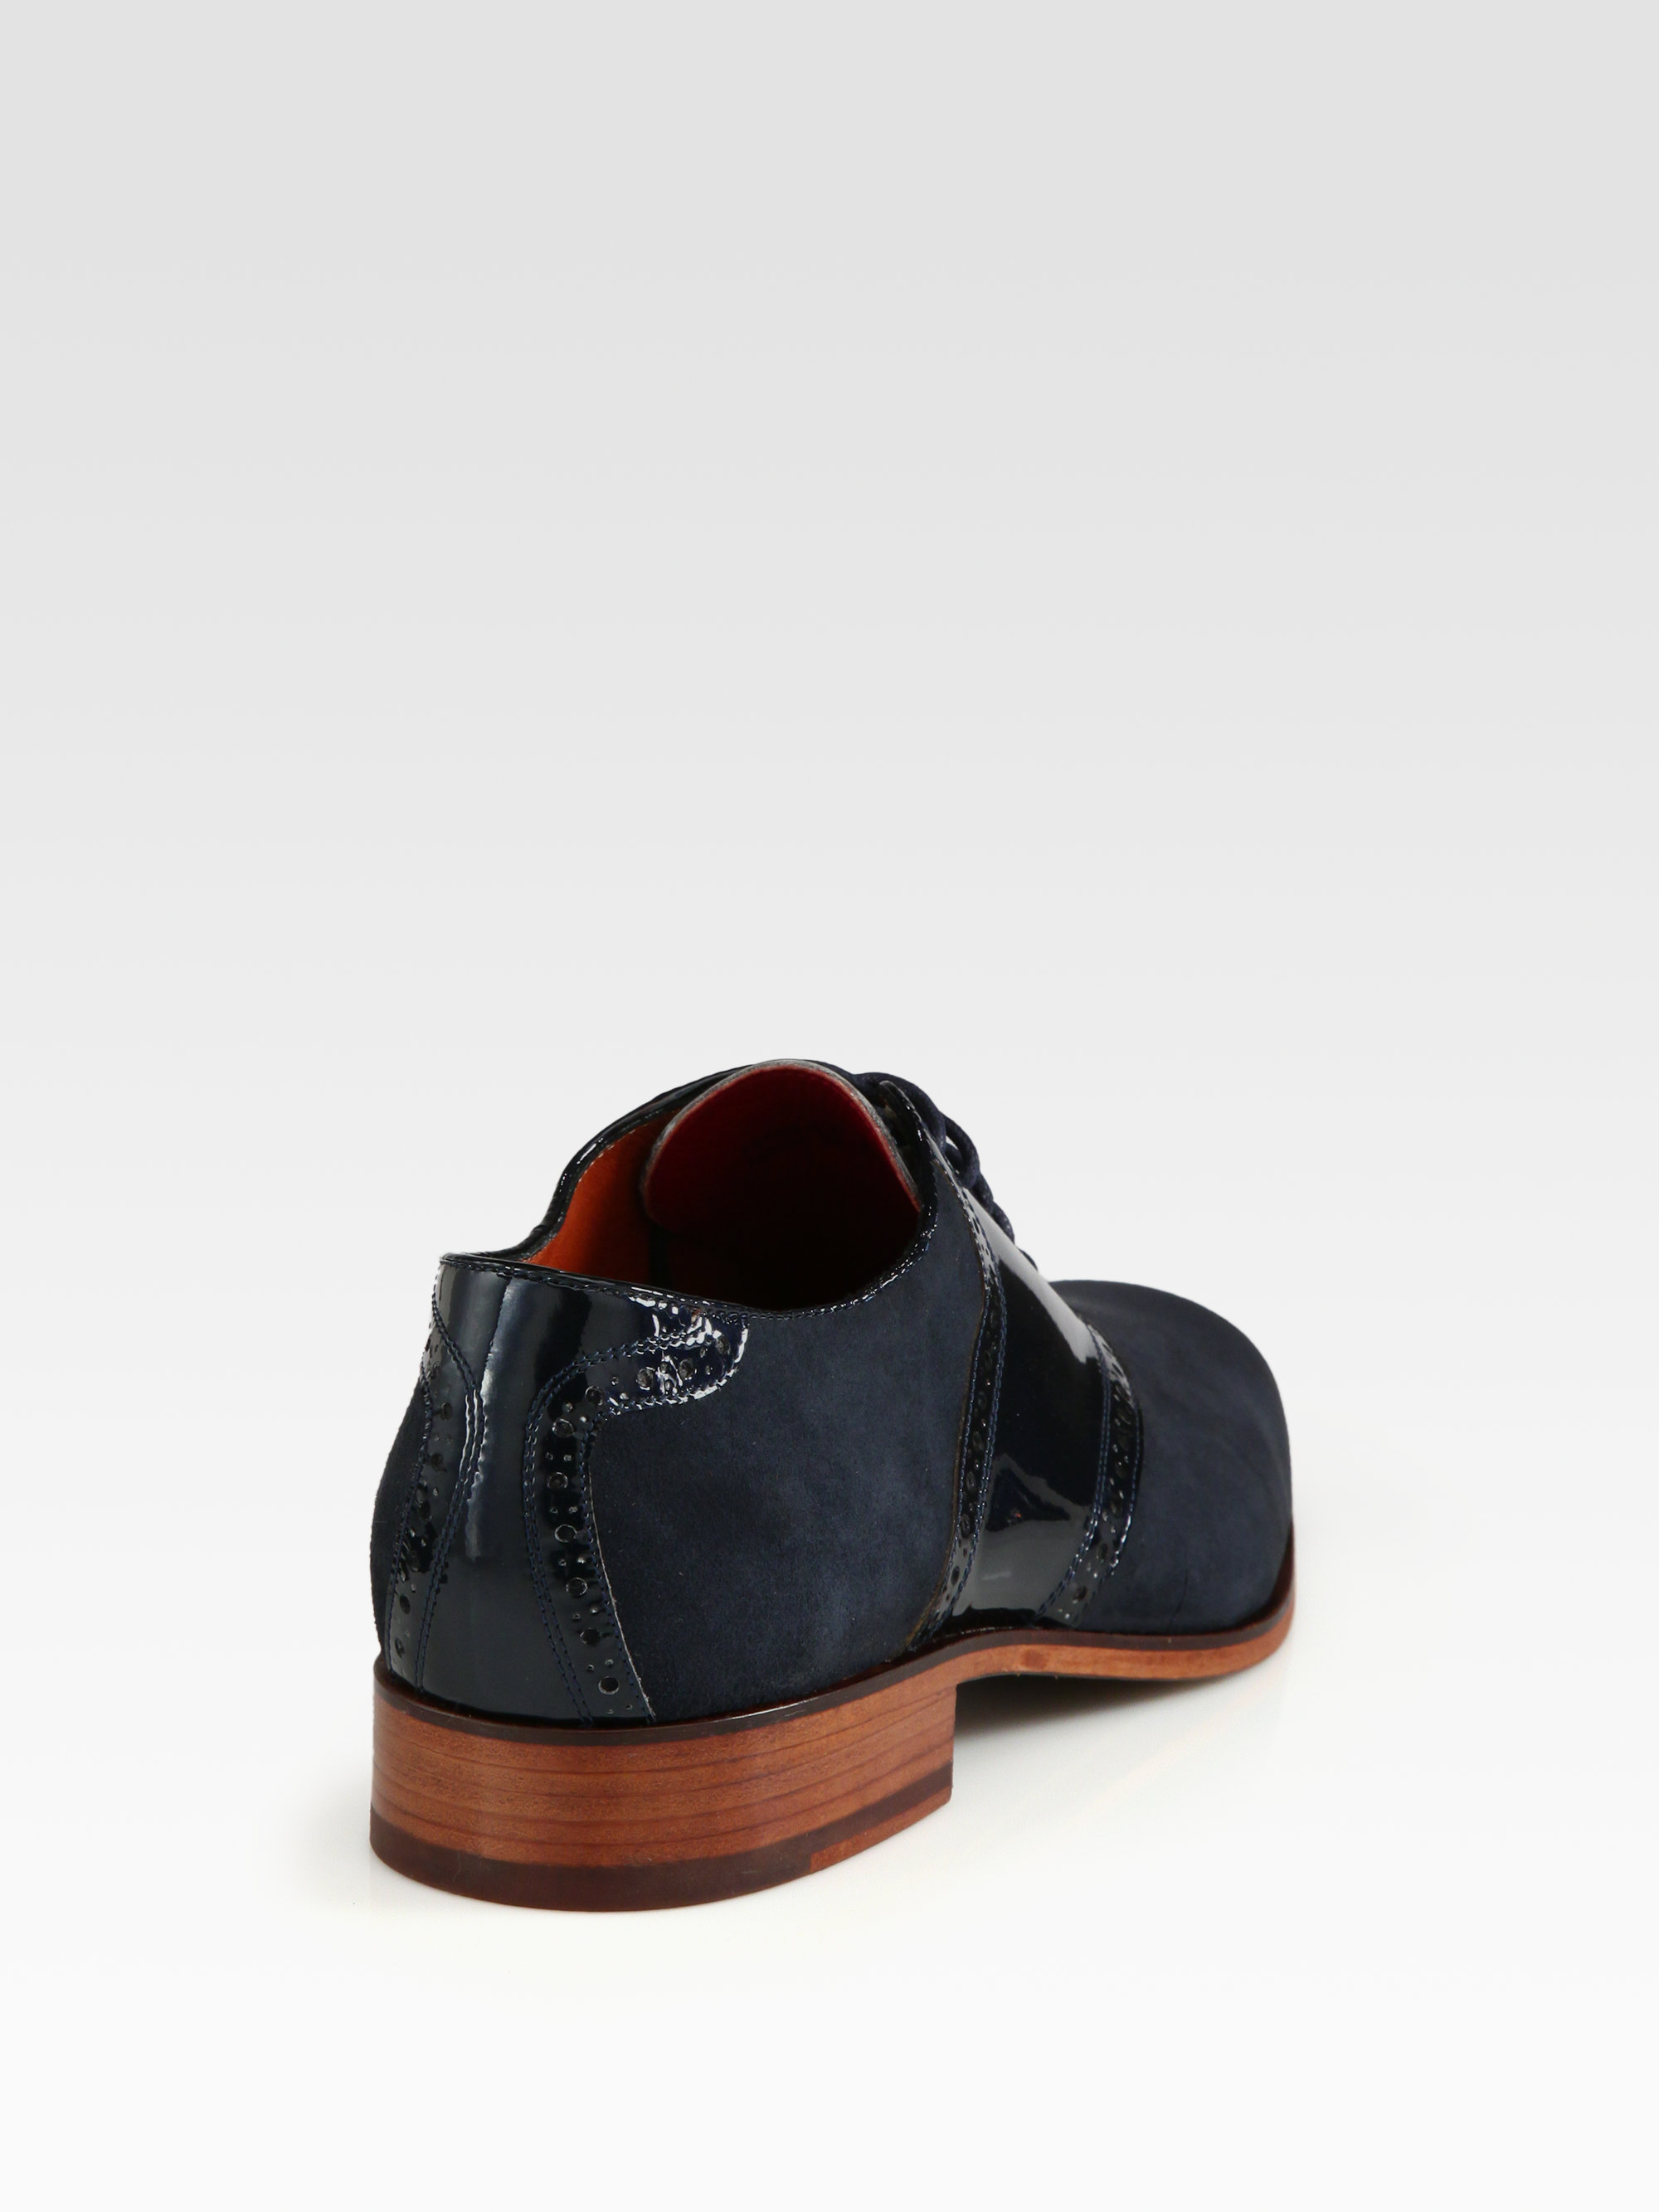 florsheim by duckie brown suede saddle shoe in gray for